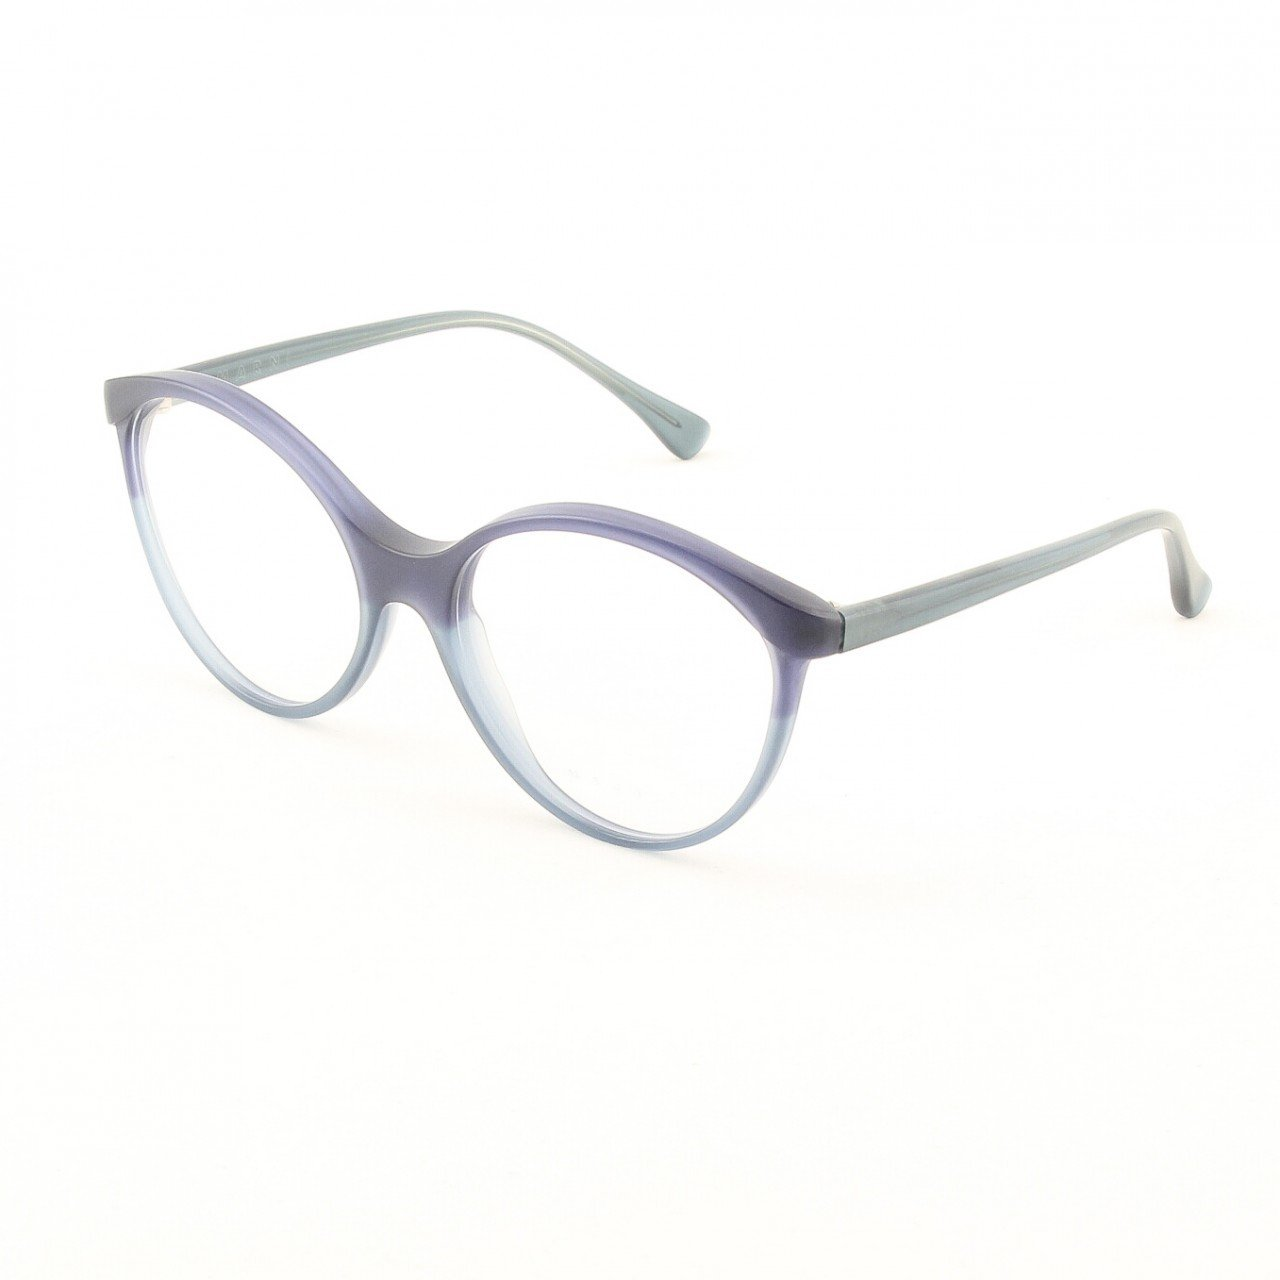 Marni MA701 Eyeglasses 02 Matte Purple and  Graphite Gray with Clear Lenses